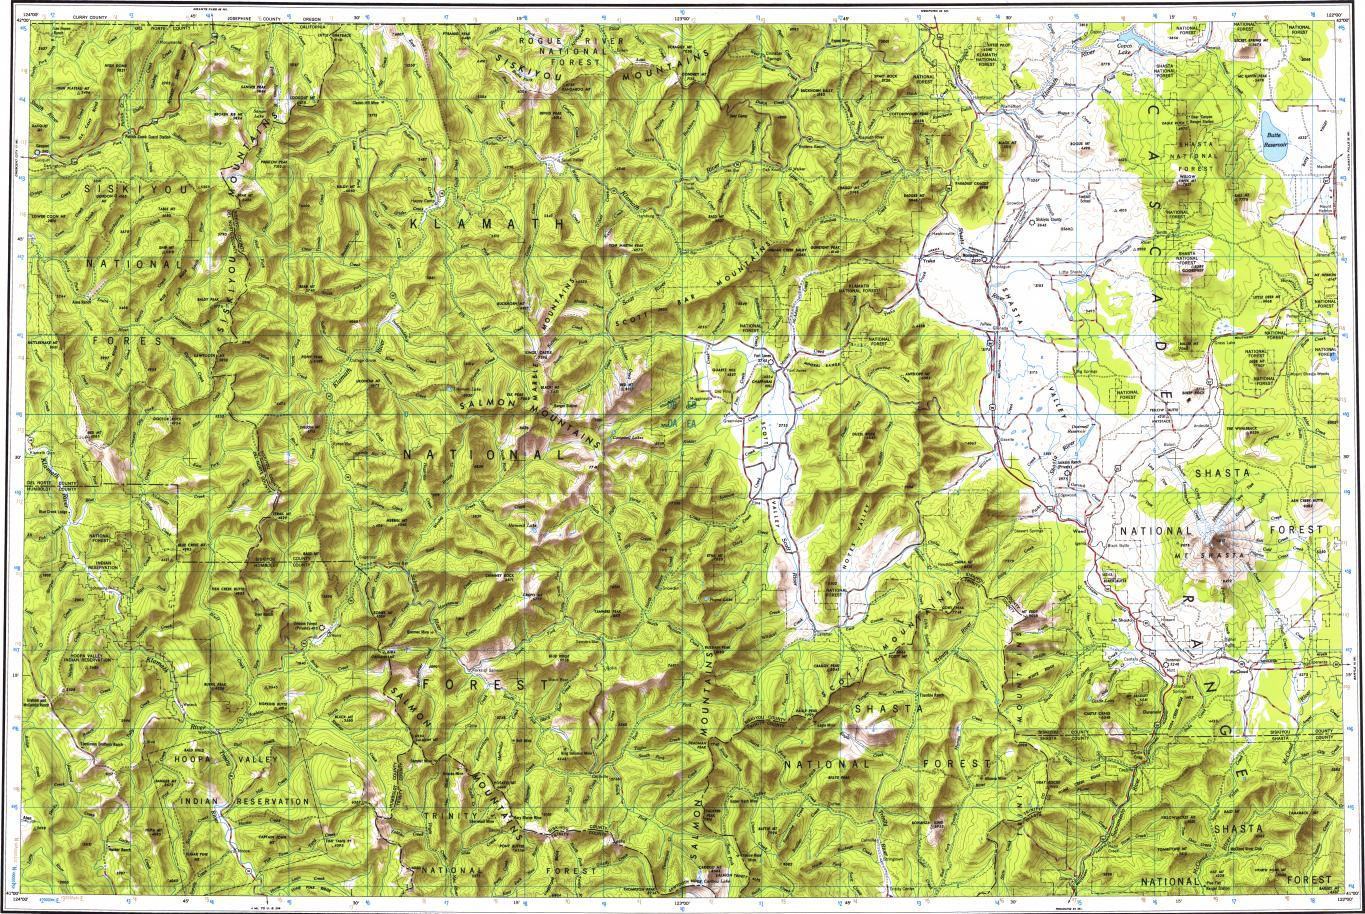 Download Topographic Map In Area Of Yreka Mount Shasta Dunsmuir